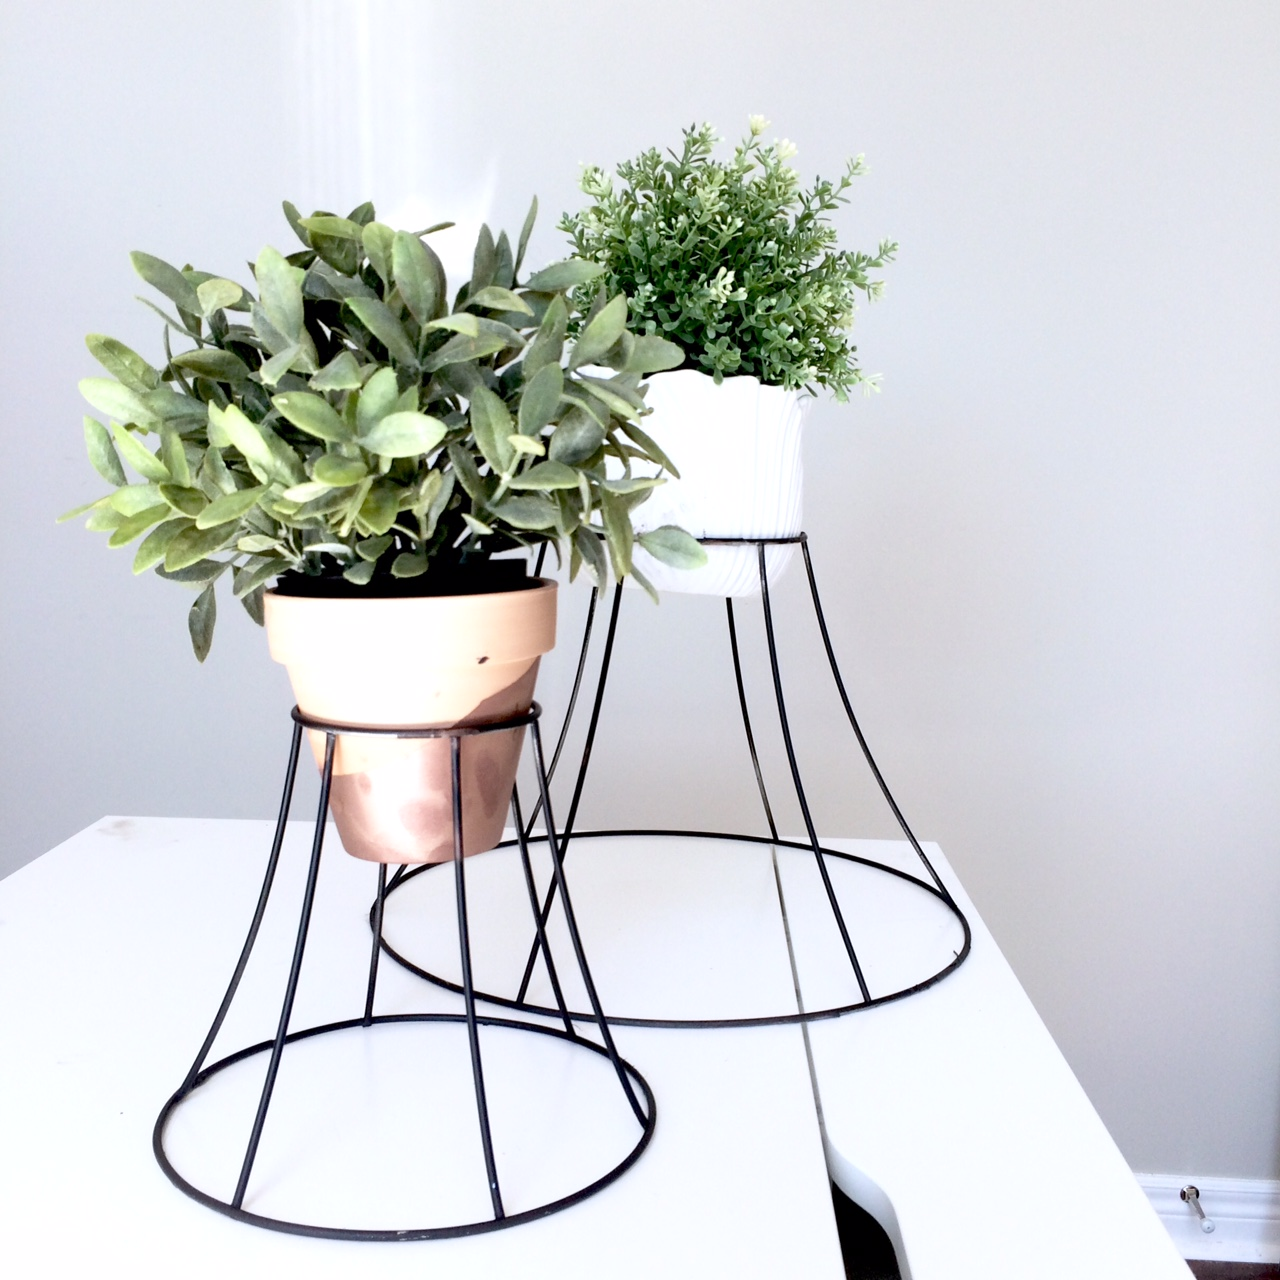 Diy lampshade plant stand harlow thistle home design the spring flowers have got to be right around the corner right bueller well in any case perhaps this diy lampshade plant stand might help them along greentooth Gallery